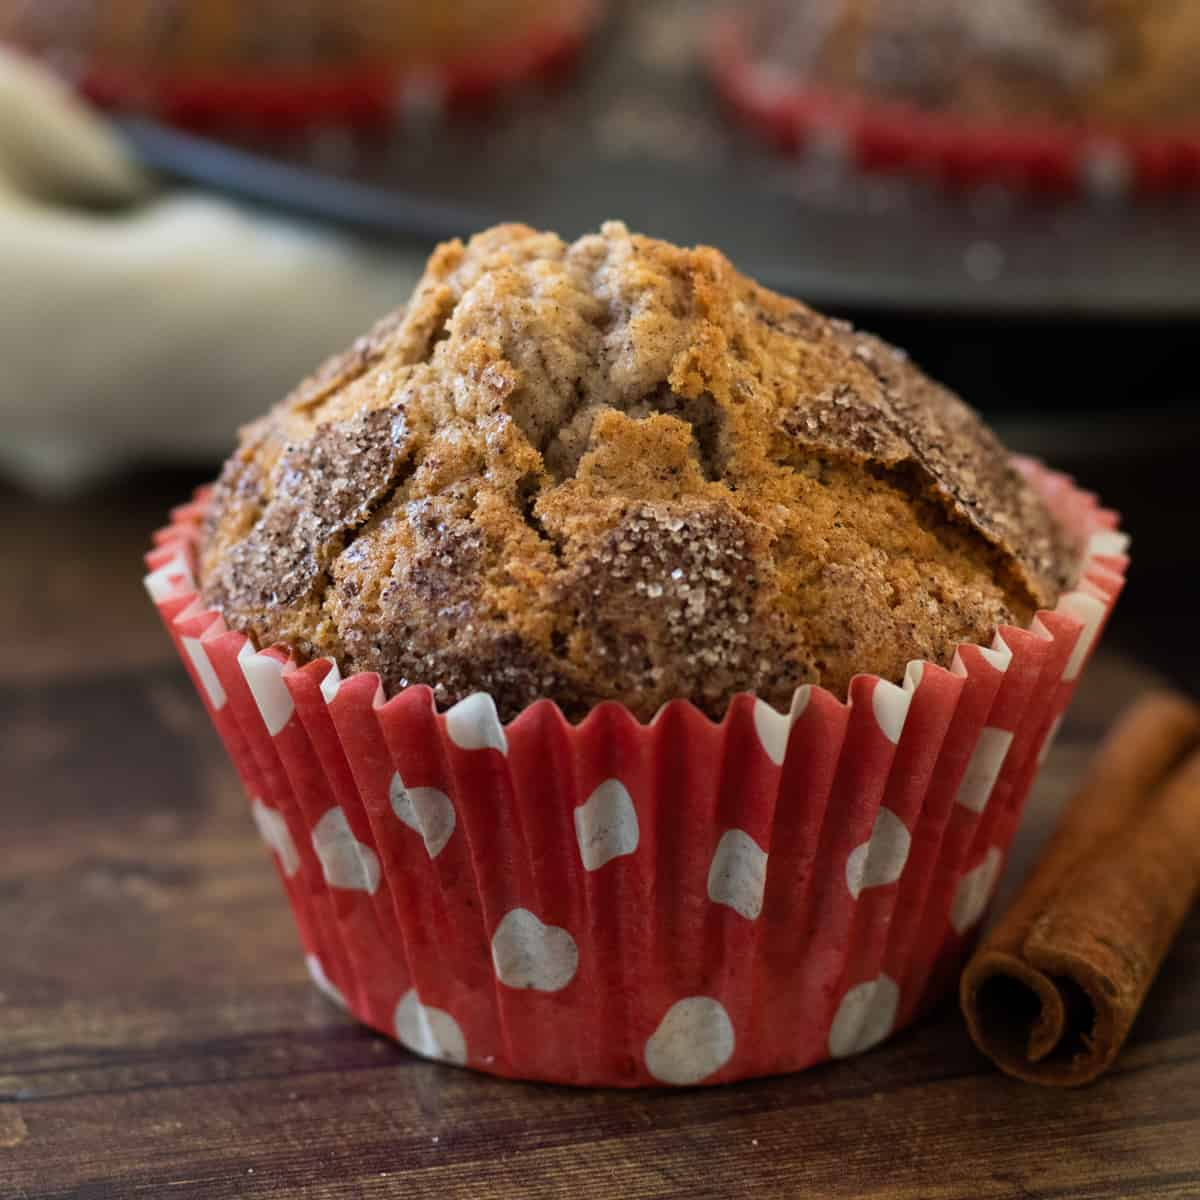 a cinnamon muffin cupcake in front of a tin full